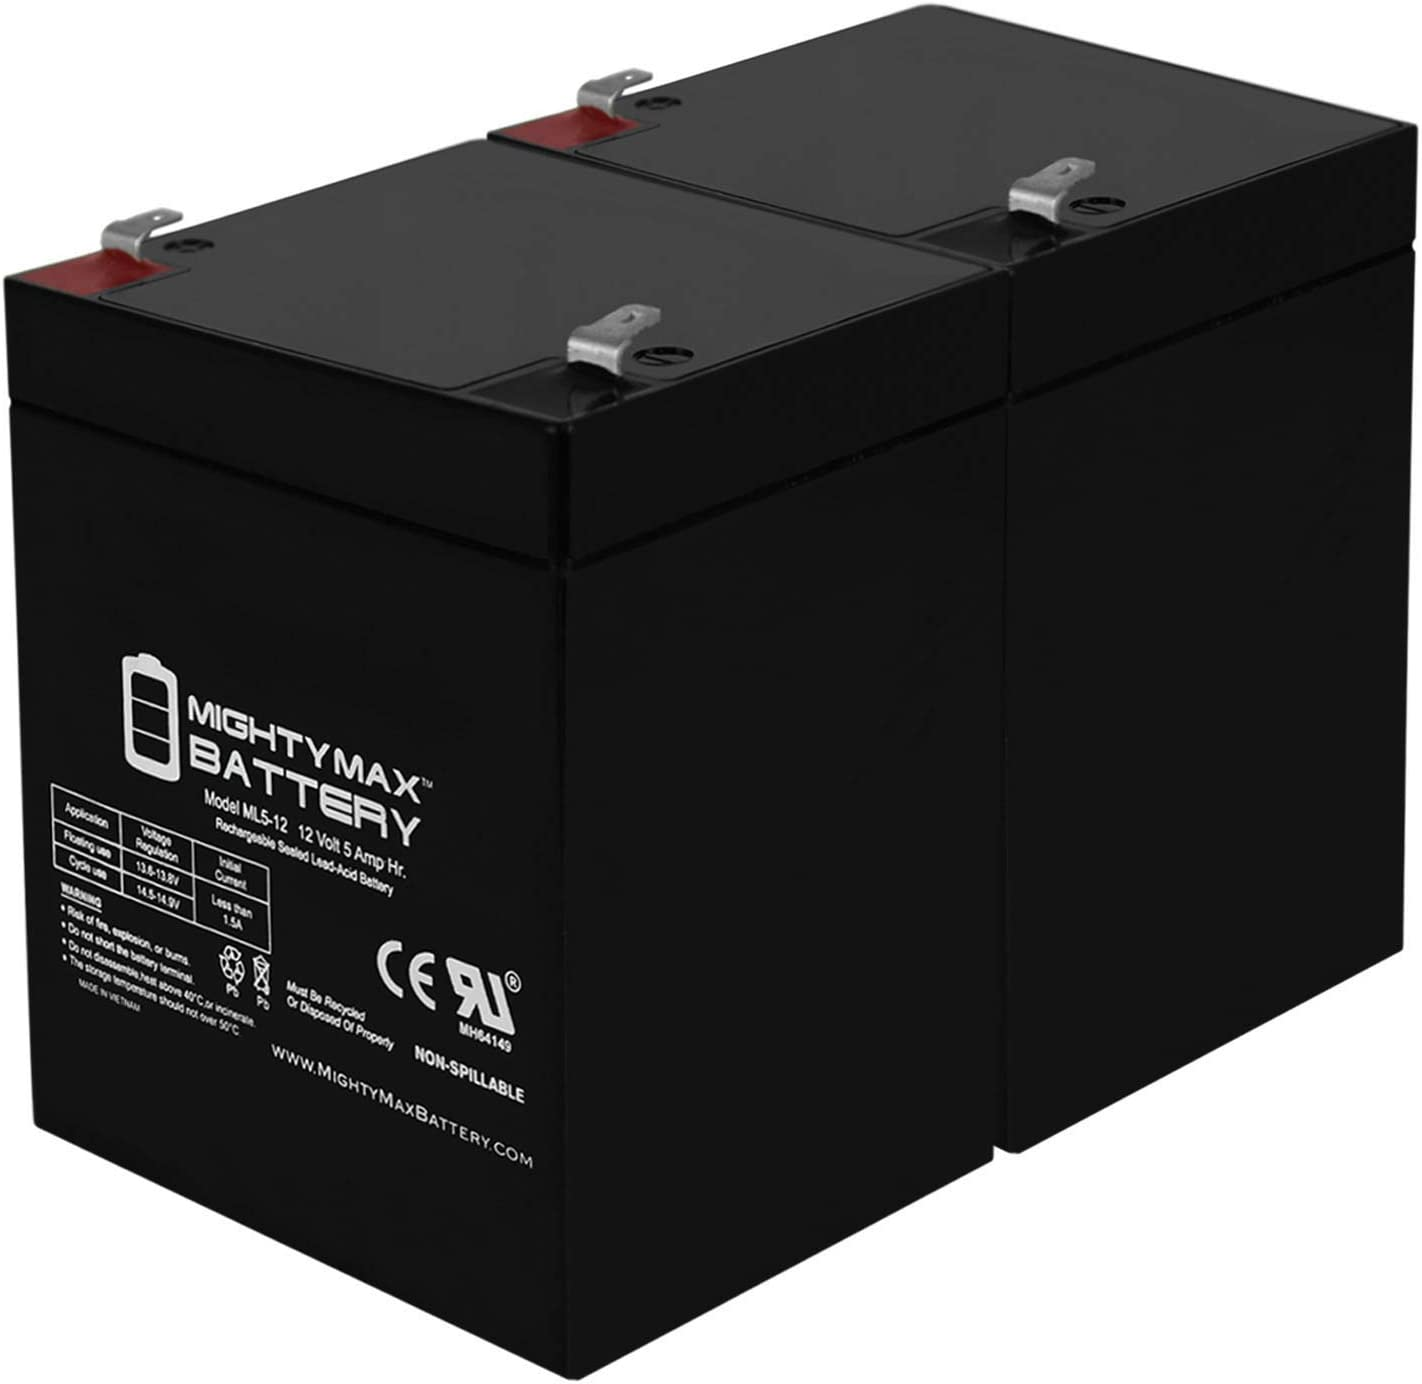 2PK New AB1250 12V 5Ah Scooter Battery Replaces 4.5Ah Enduring 6FM4.5 6 FM 4.5